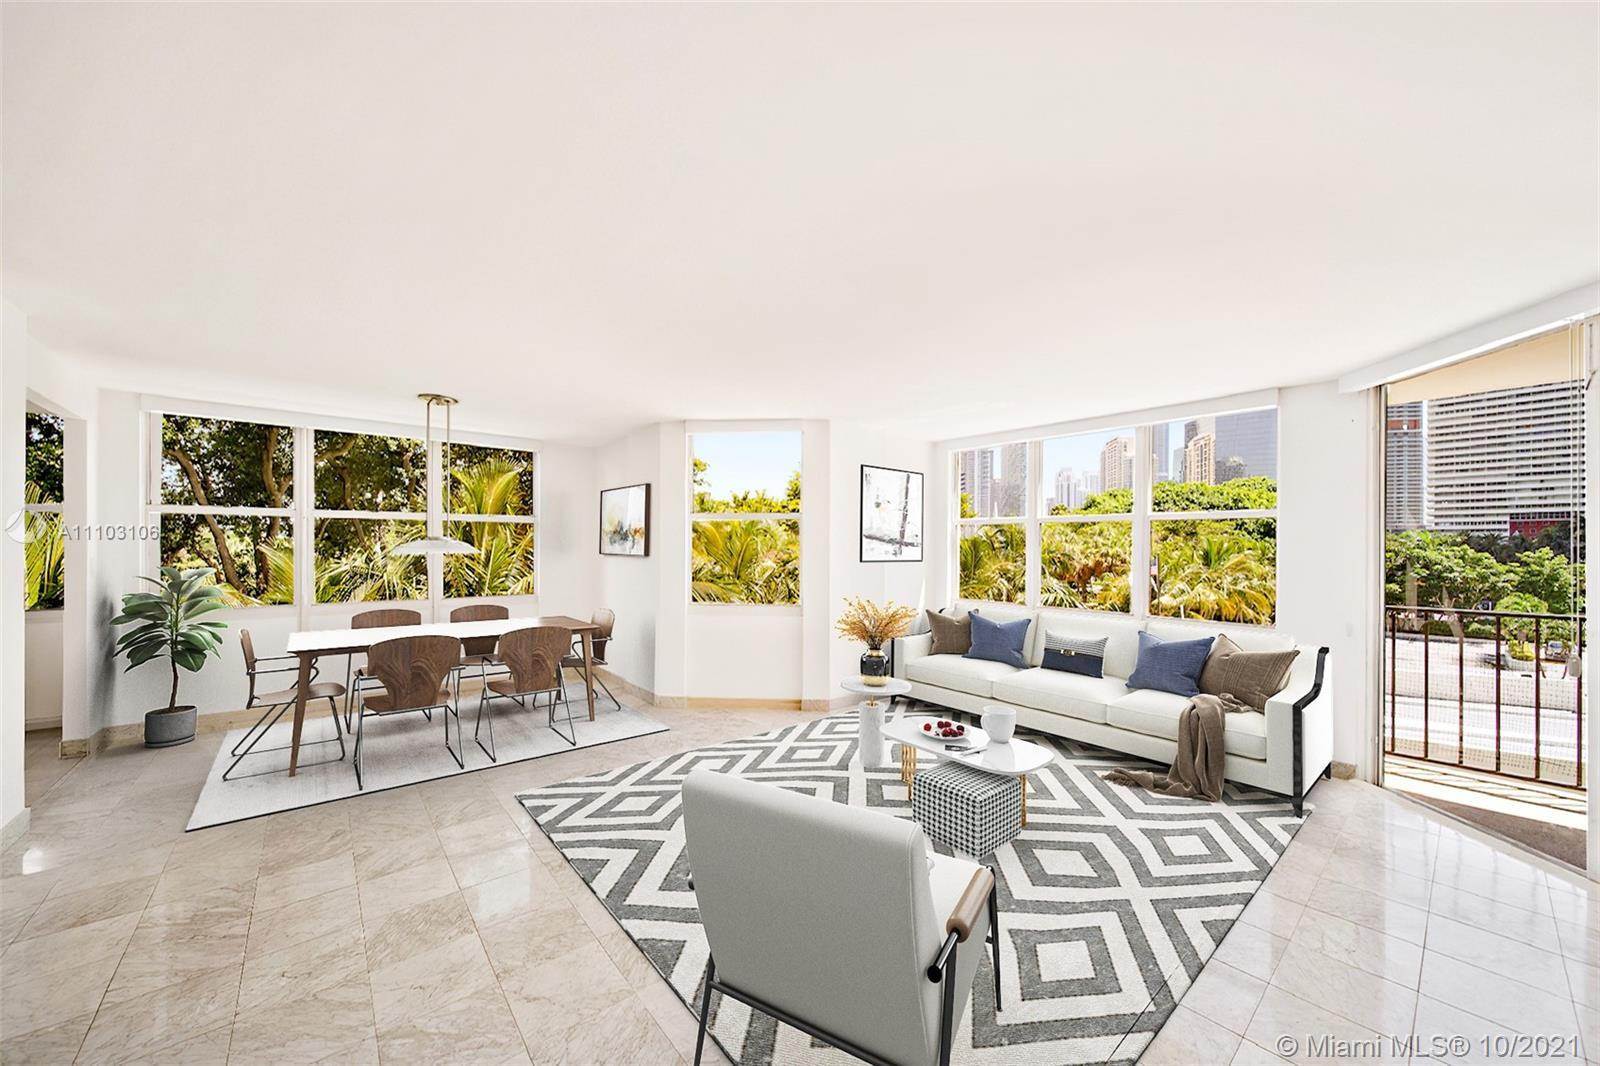 Spacious 2,133 SqFt 3 BEDS & 2.5 BATHS corner unit in full service, all amenities complex. This unit